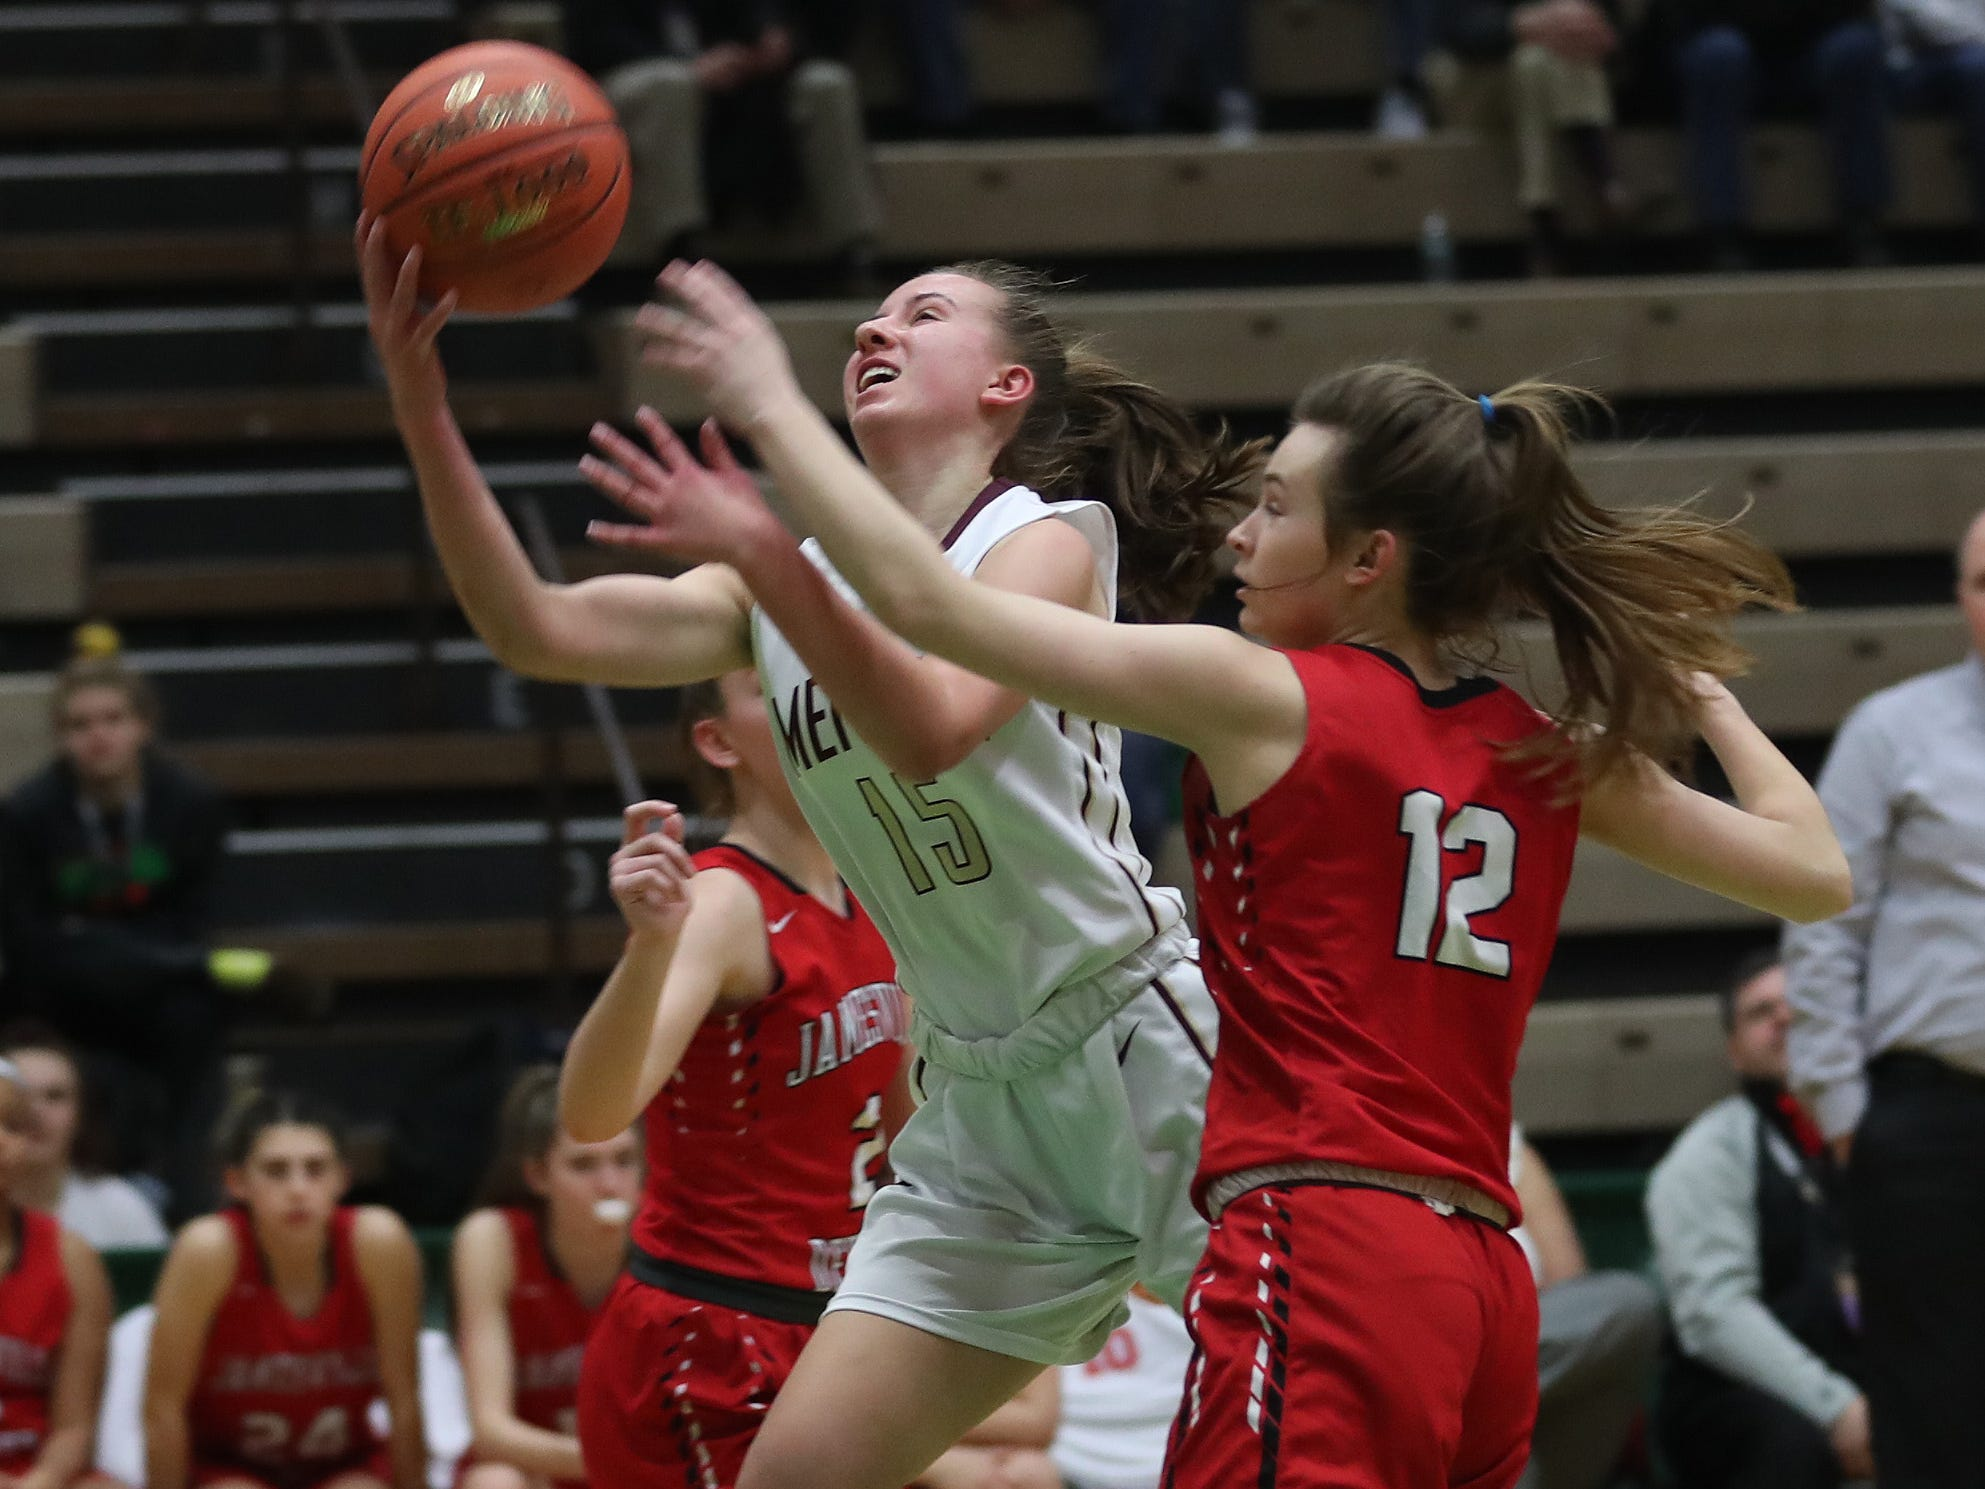 Pittsford Mendon's Danielle Strauf (15) drives to the basket against Jamesville-DeWitt's Sydney Baker (2) during the girls Class A state semifinal at Hudson Valley Community College in Troy March 16, 2019.